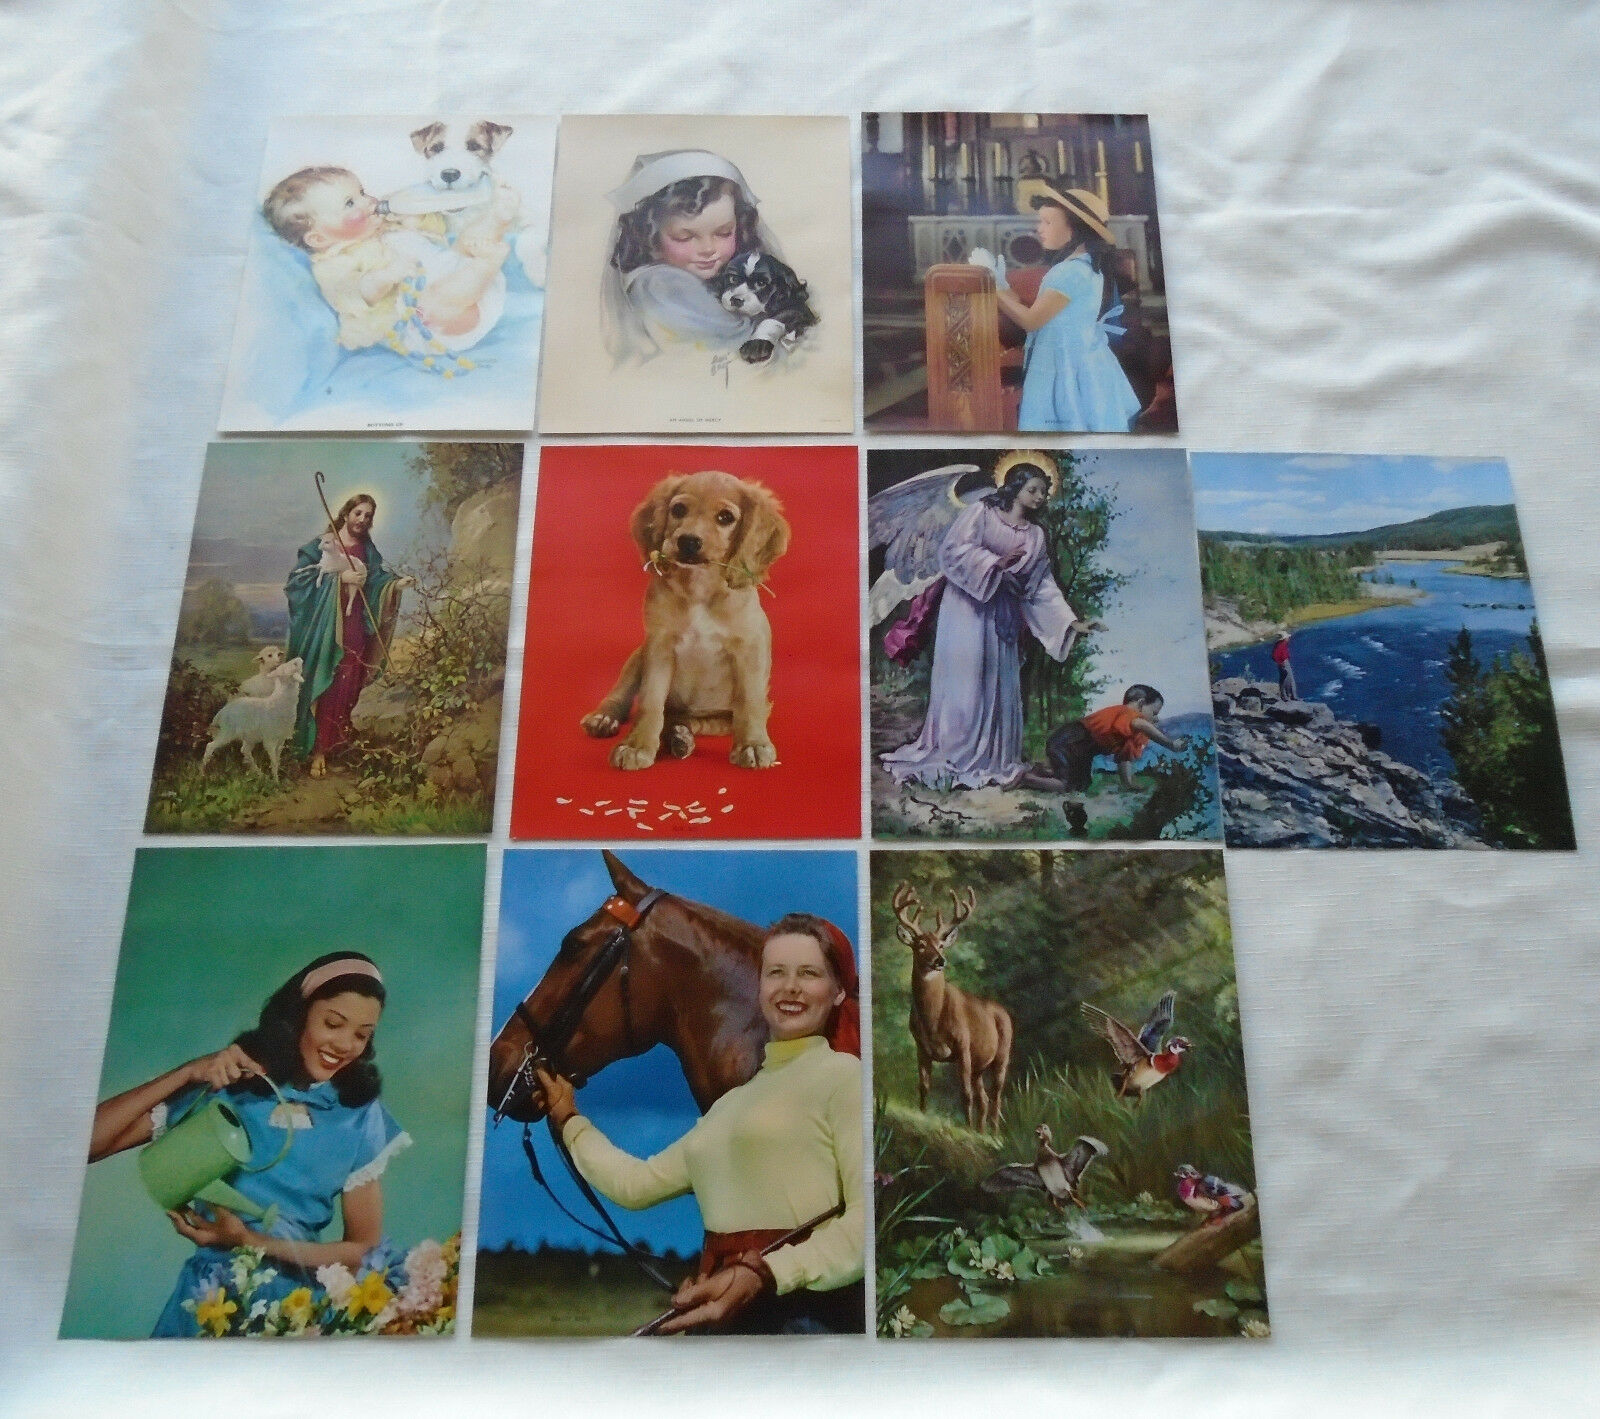 VTG 50s Lot of 10 Lithos Fishing Girl Dog Religious African American 7 x 9